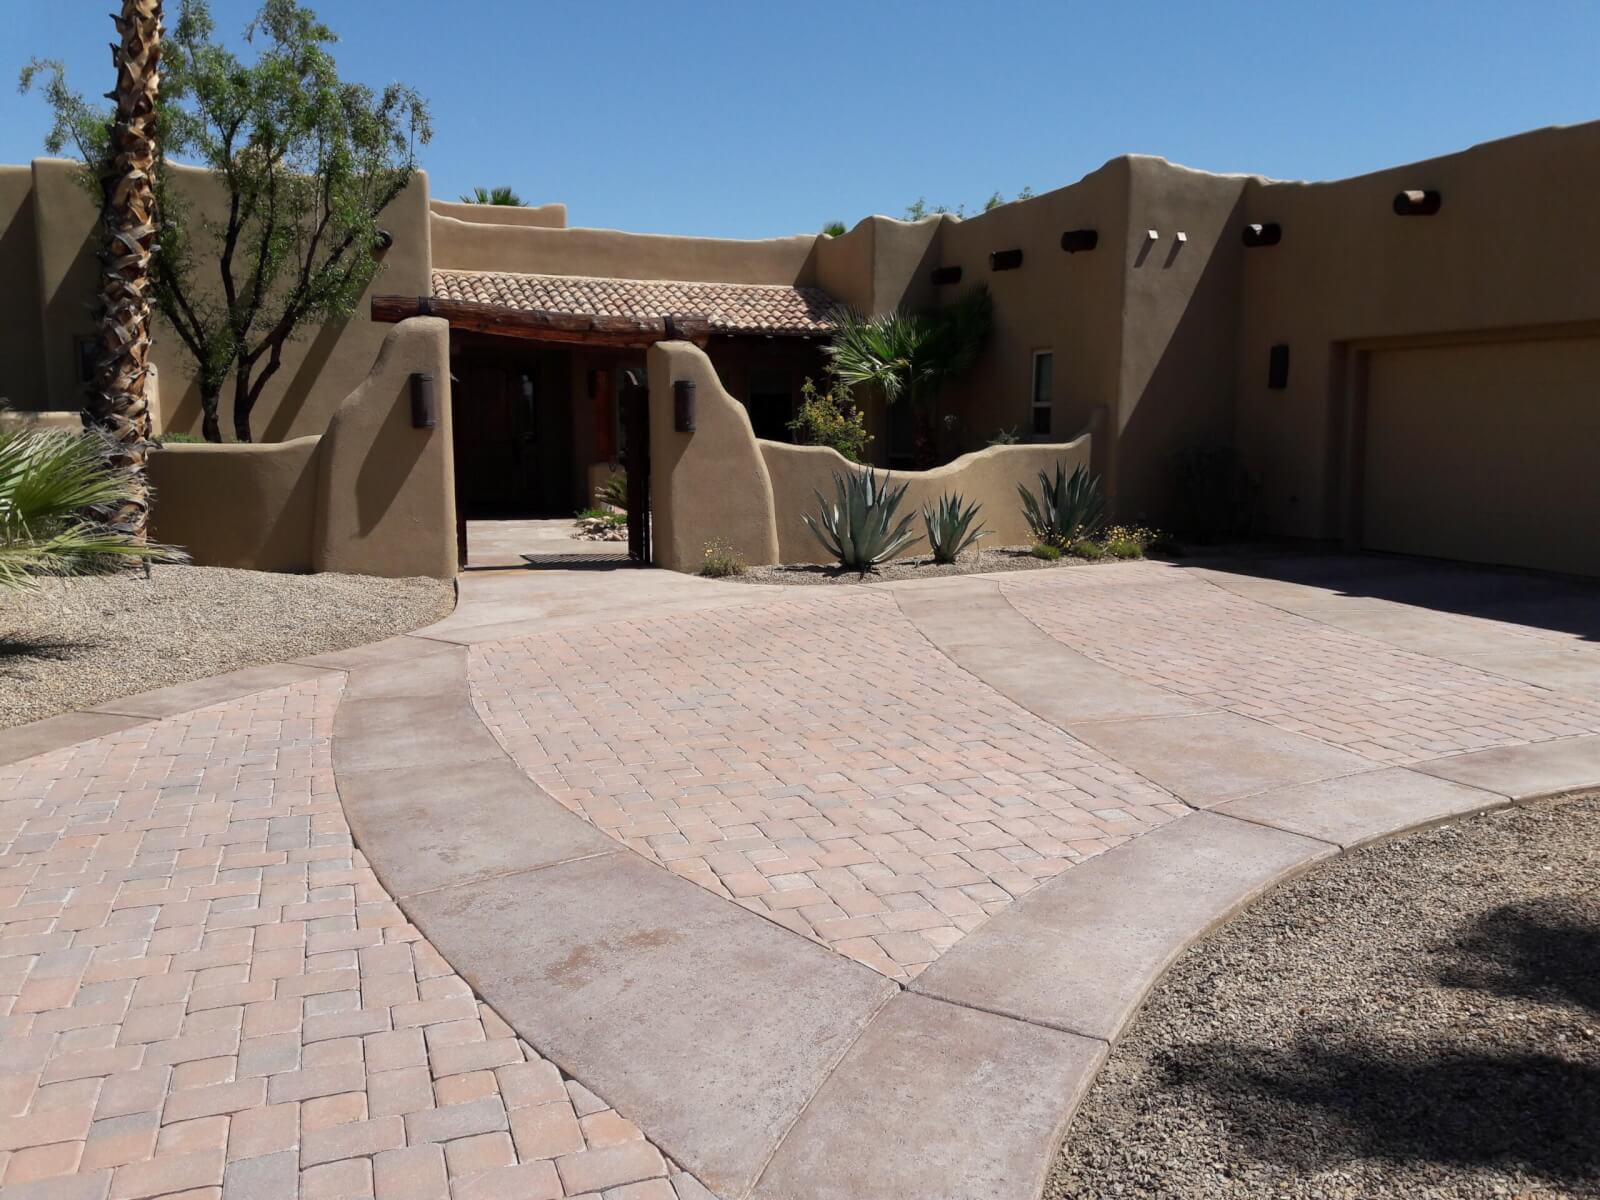 Driveway paver coating before